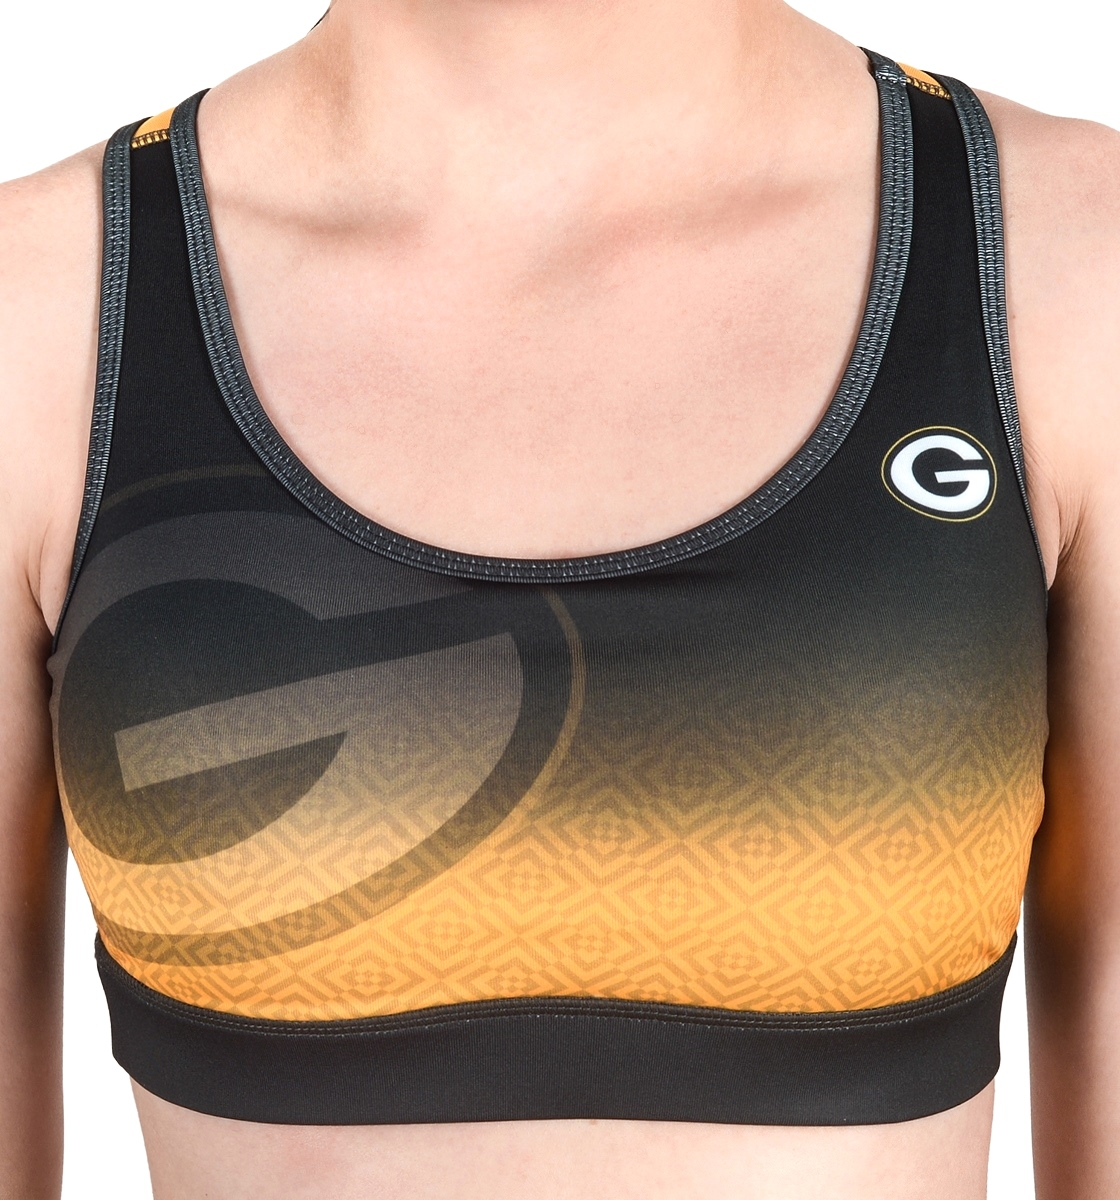 Green Bay Packers Women's NFL Gradient Sports Bra